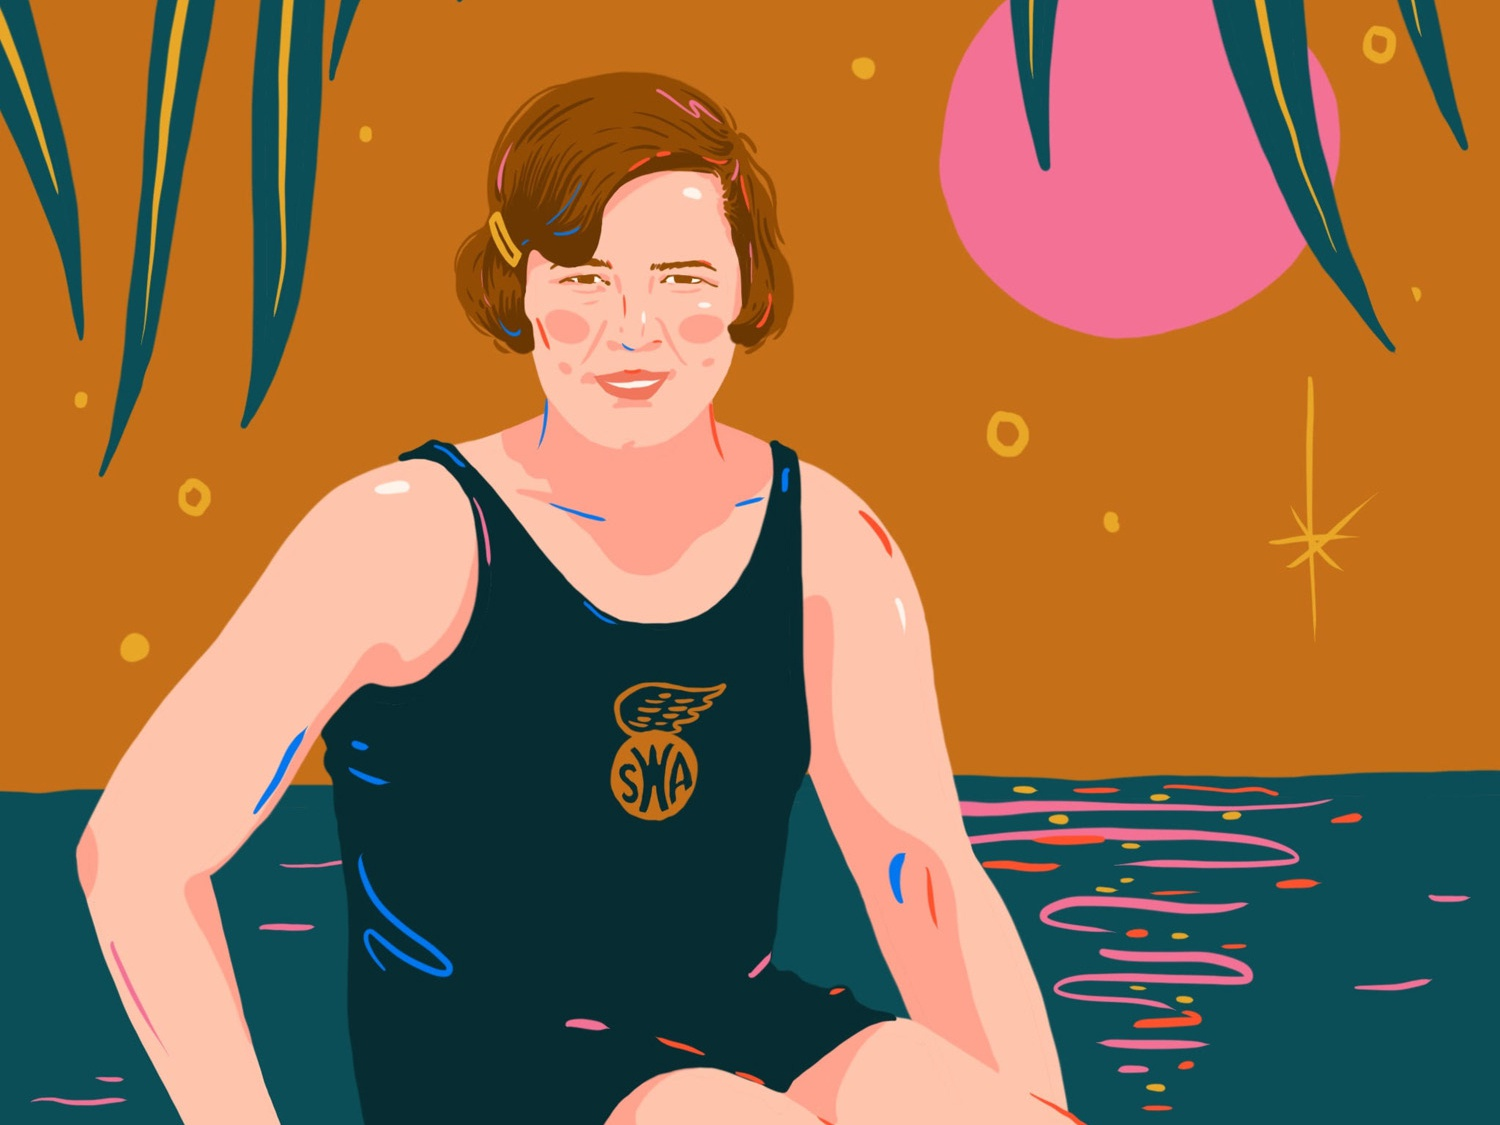 Gertrude Ederle vintage woman editorial water olympics swimmer pink mustard design illustration english channel swimming